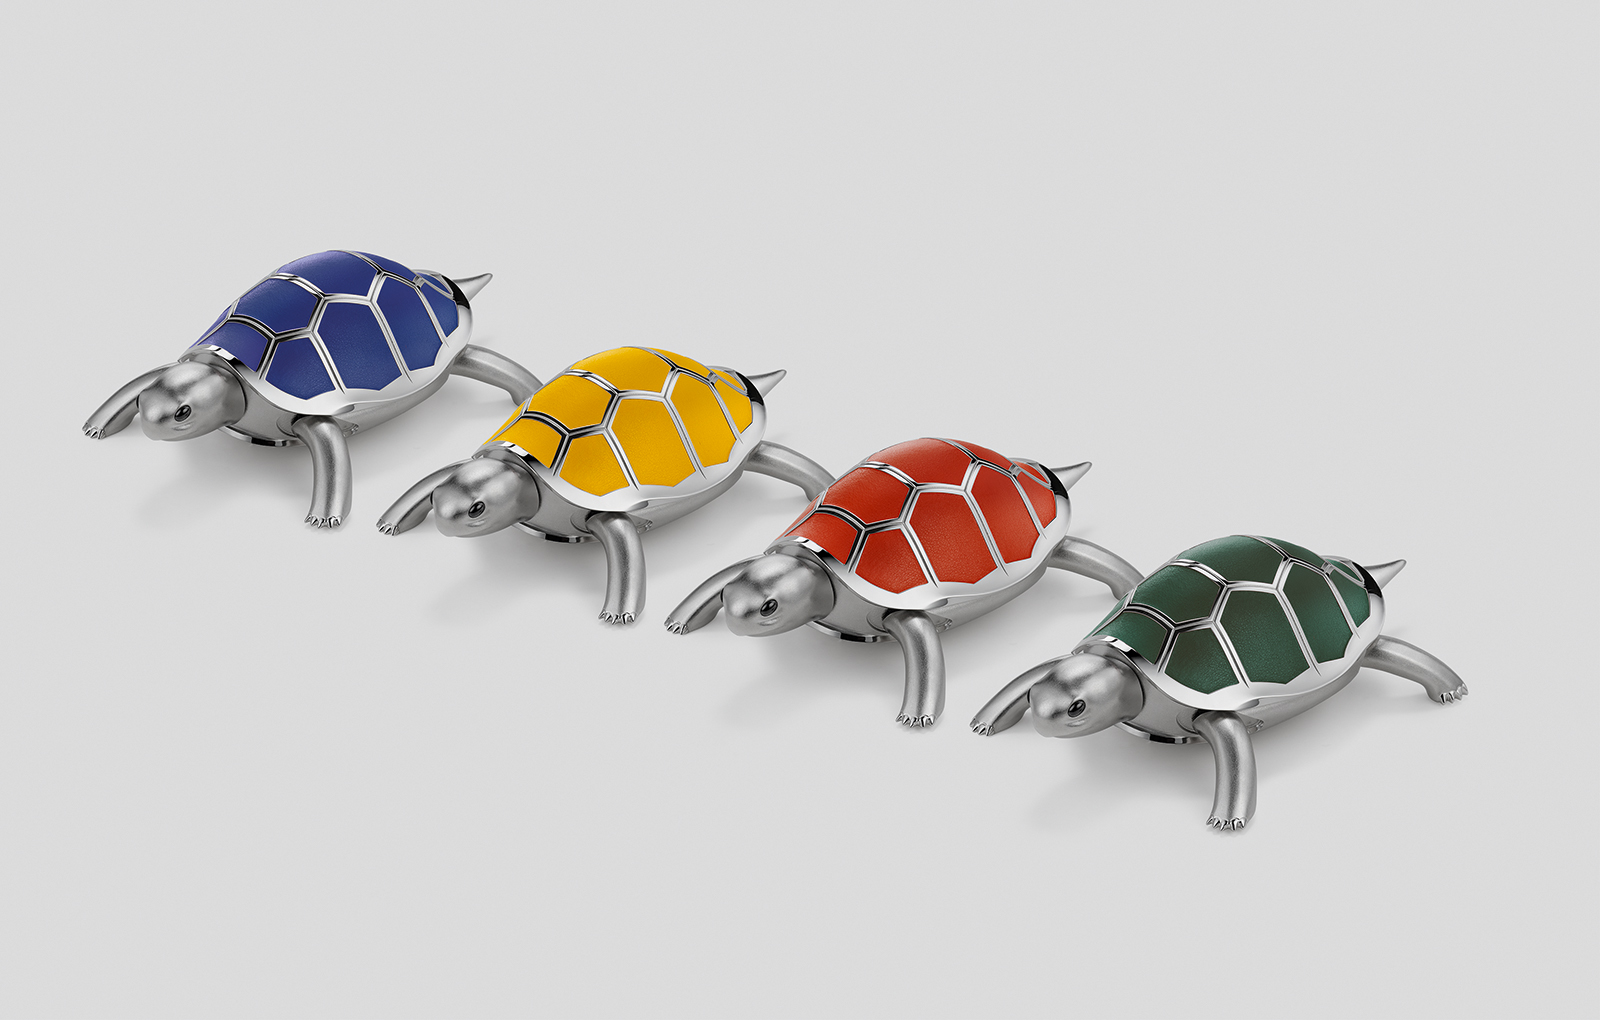 Introducing the MB&F Kelys & Chirp Singing Bird Tortoise